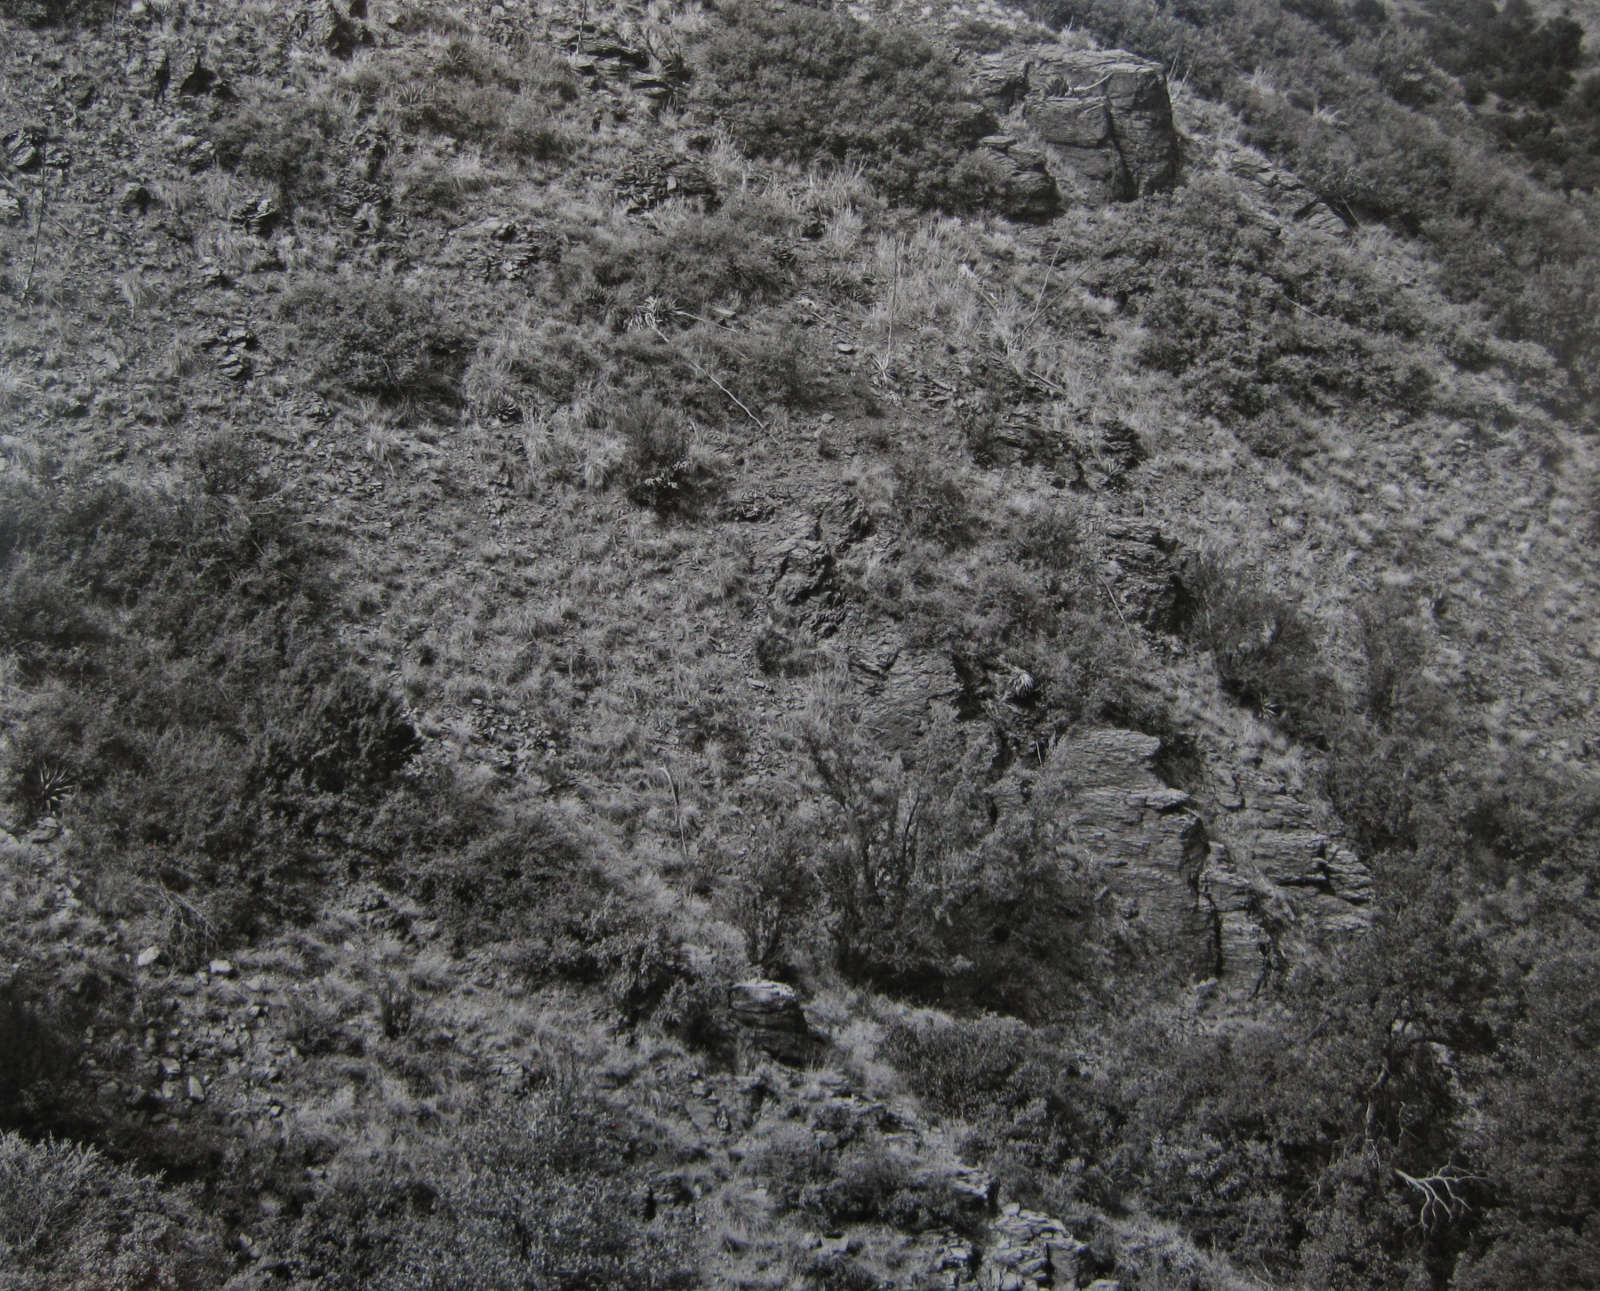 Arizona Landscape (Blood Basin), 1943